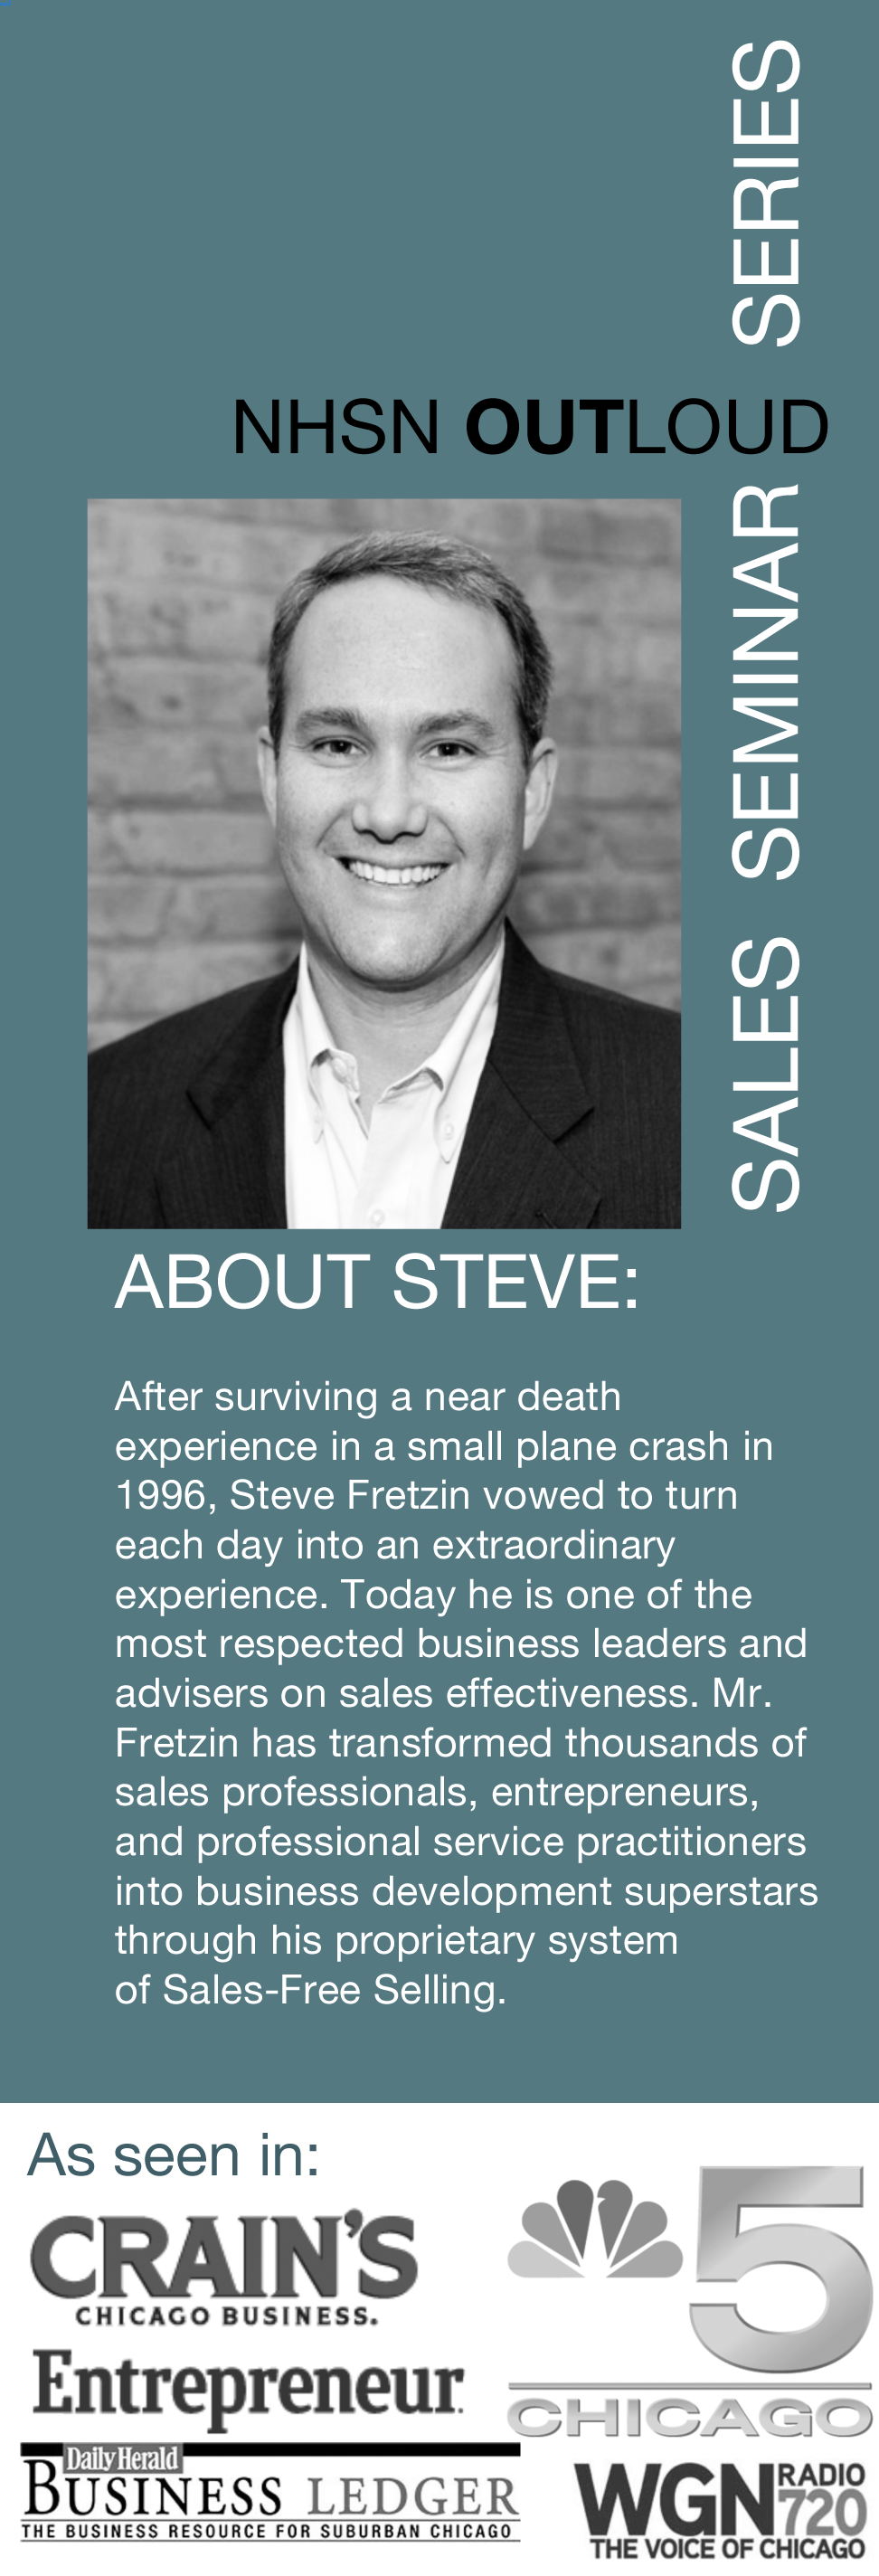 After surviving a near death experience in a small plane crash in 1996, Steve Fretzin vowed to turn each day into an extraordinary experience. Today he is one of the most respected business leaders and advisers on sales effectiveness. Mr. Fretzin has transformed thousands of sales professionals, entrepreneurs, and professional service practitioners into business development superstars through his proprietary system of Sales-Free Selling.